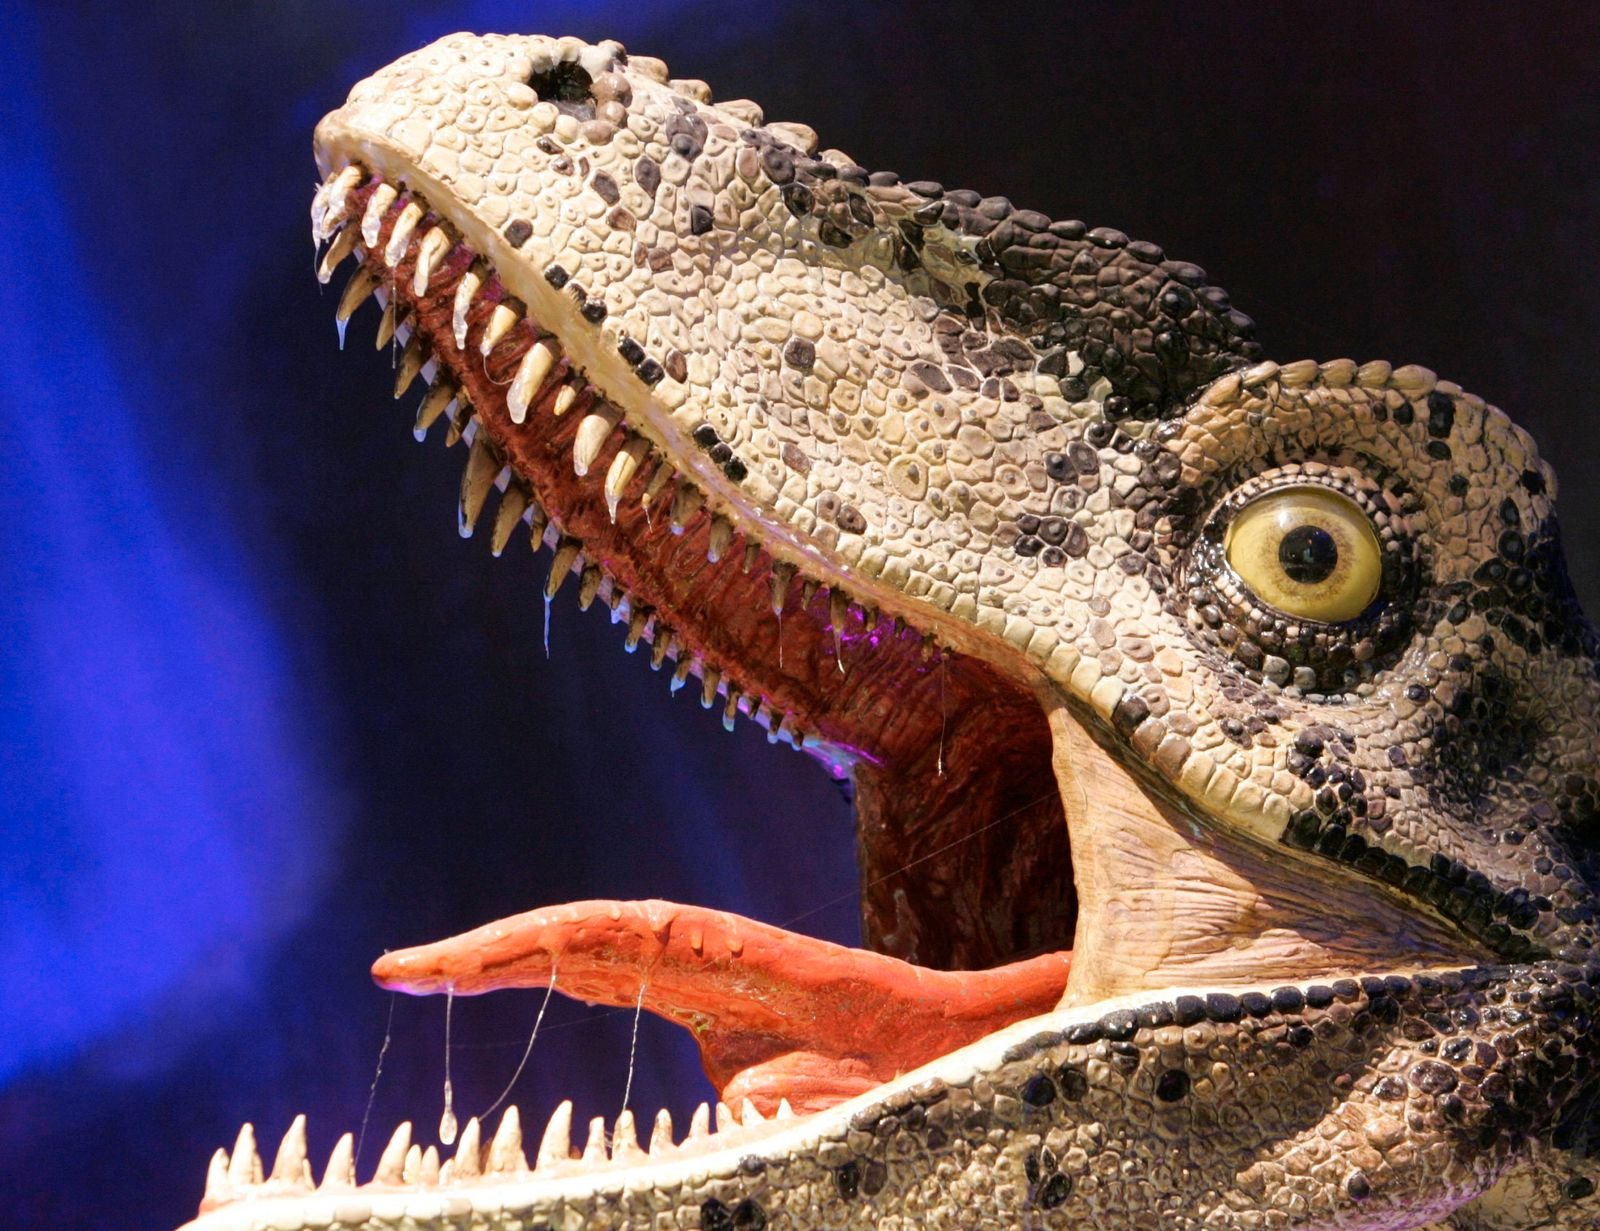 The reconstructed head of a Dromaeosaur-like Theropod dinosaur complete with saliva is seen after the opening of Australia's first permanent dinosaurs exhibition at the Australian Museum in Sydney